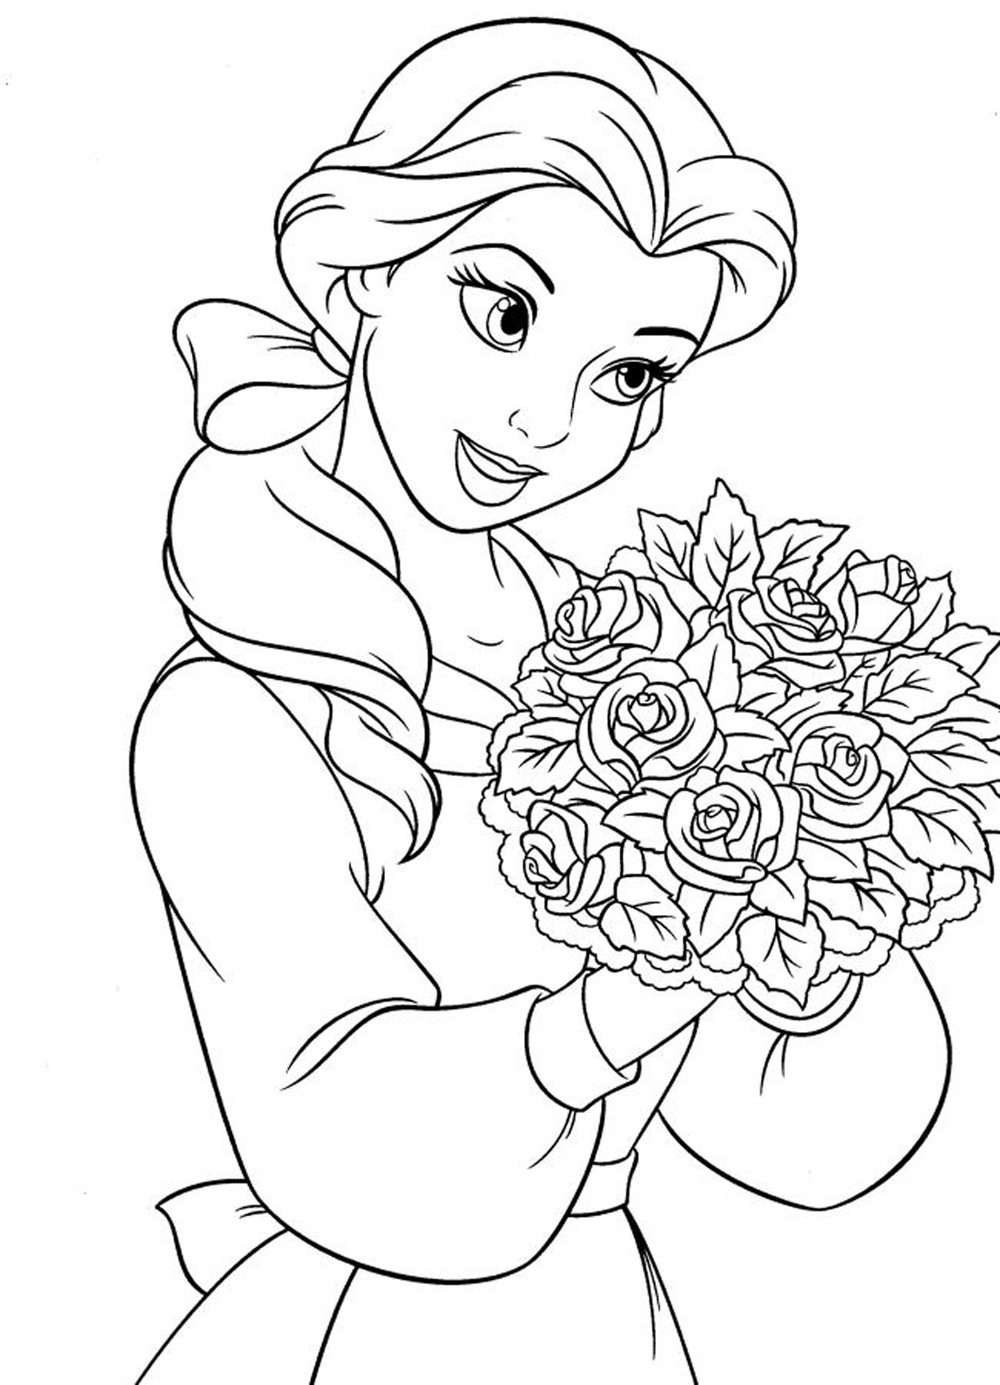 coloring pages of disney princesses - photo#4